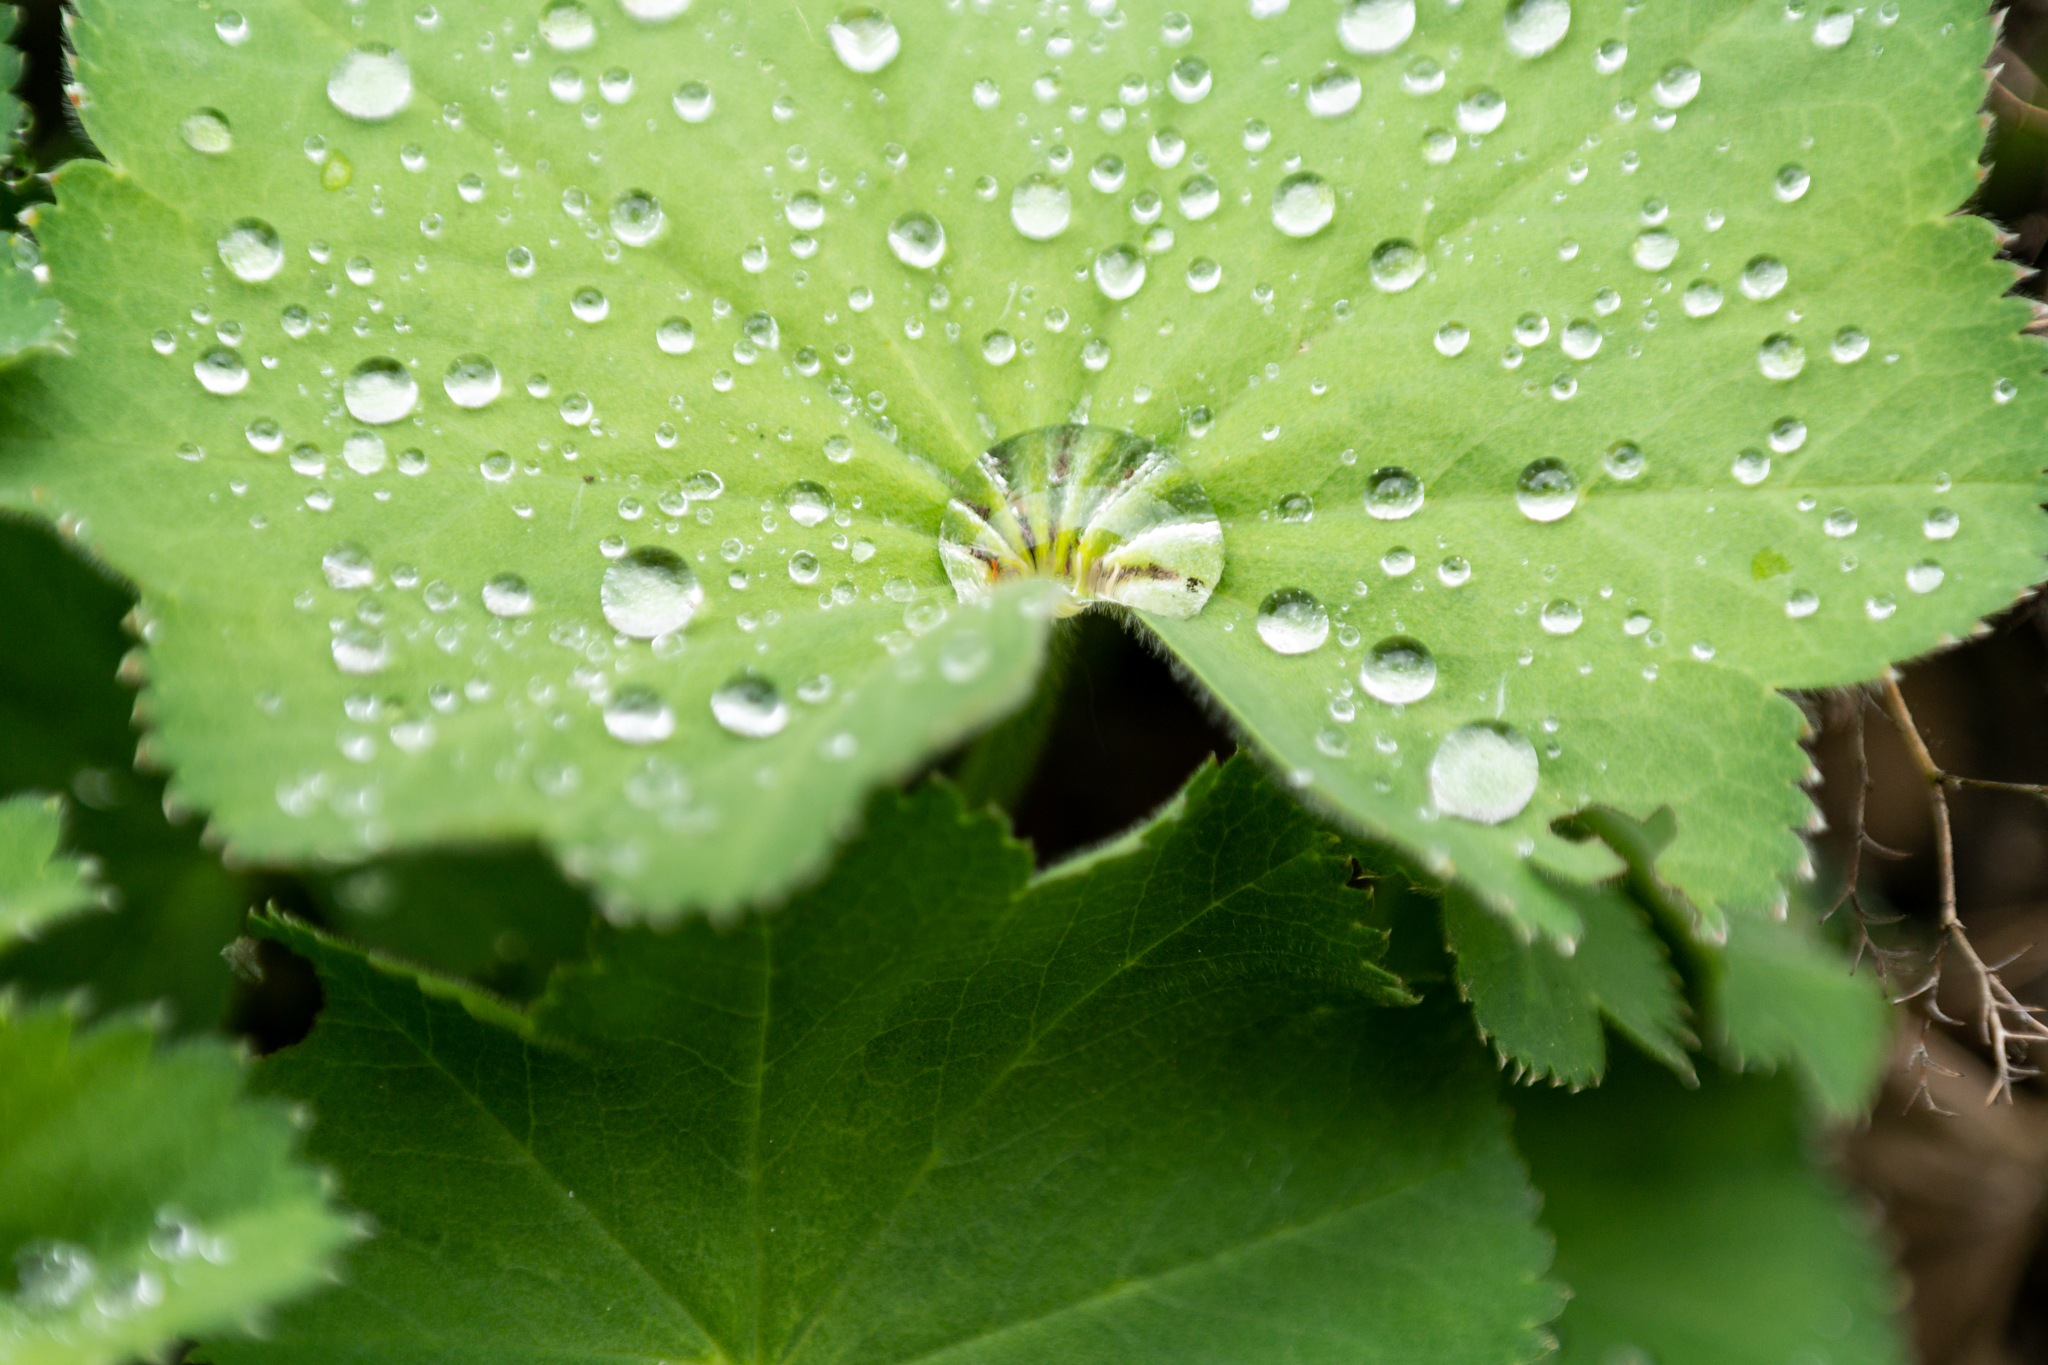 leaf and raindrops by Marcelo Hernan Zimmt